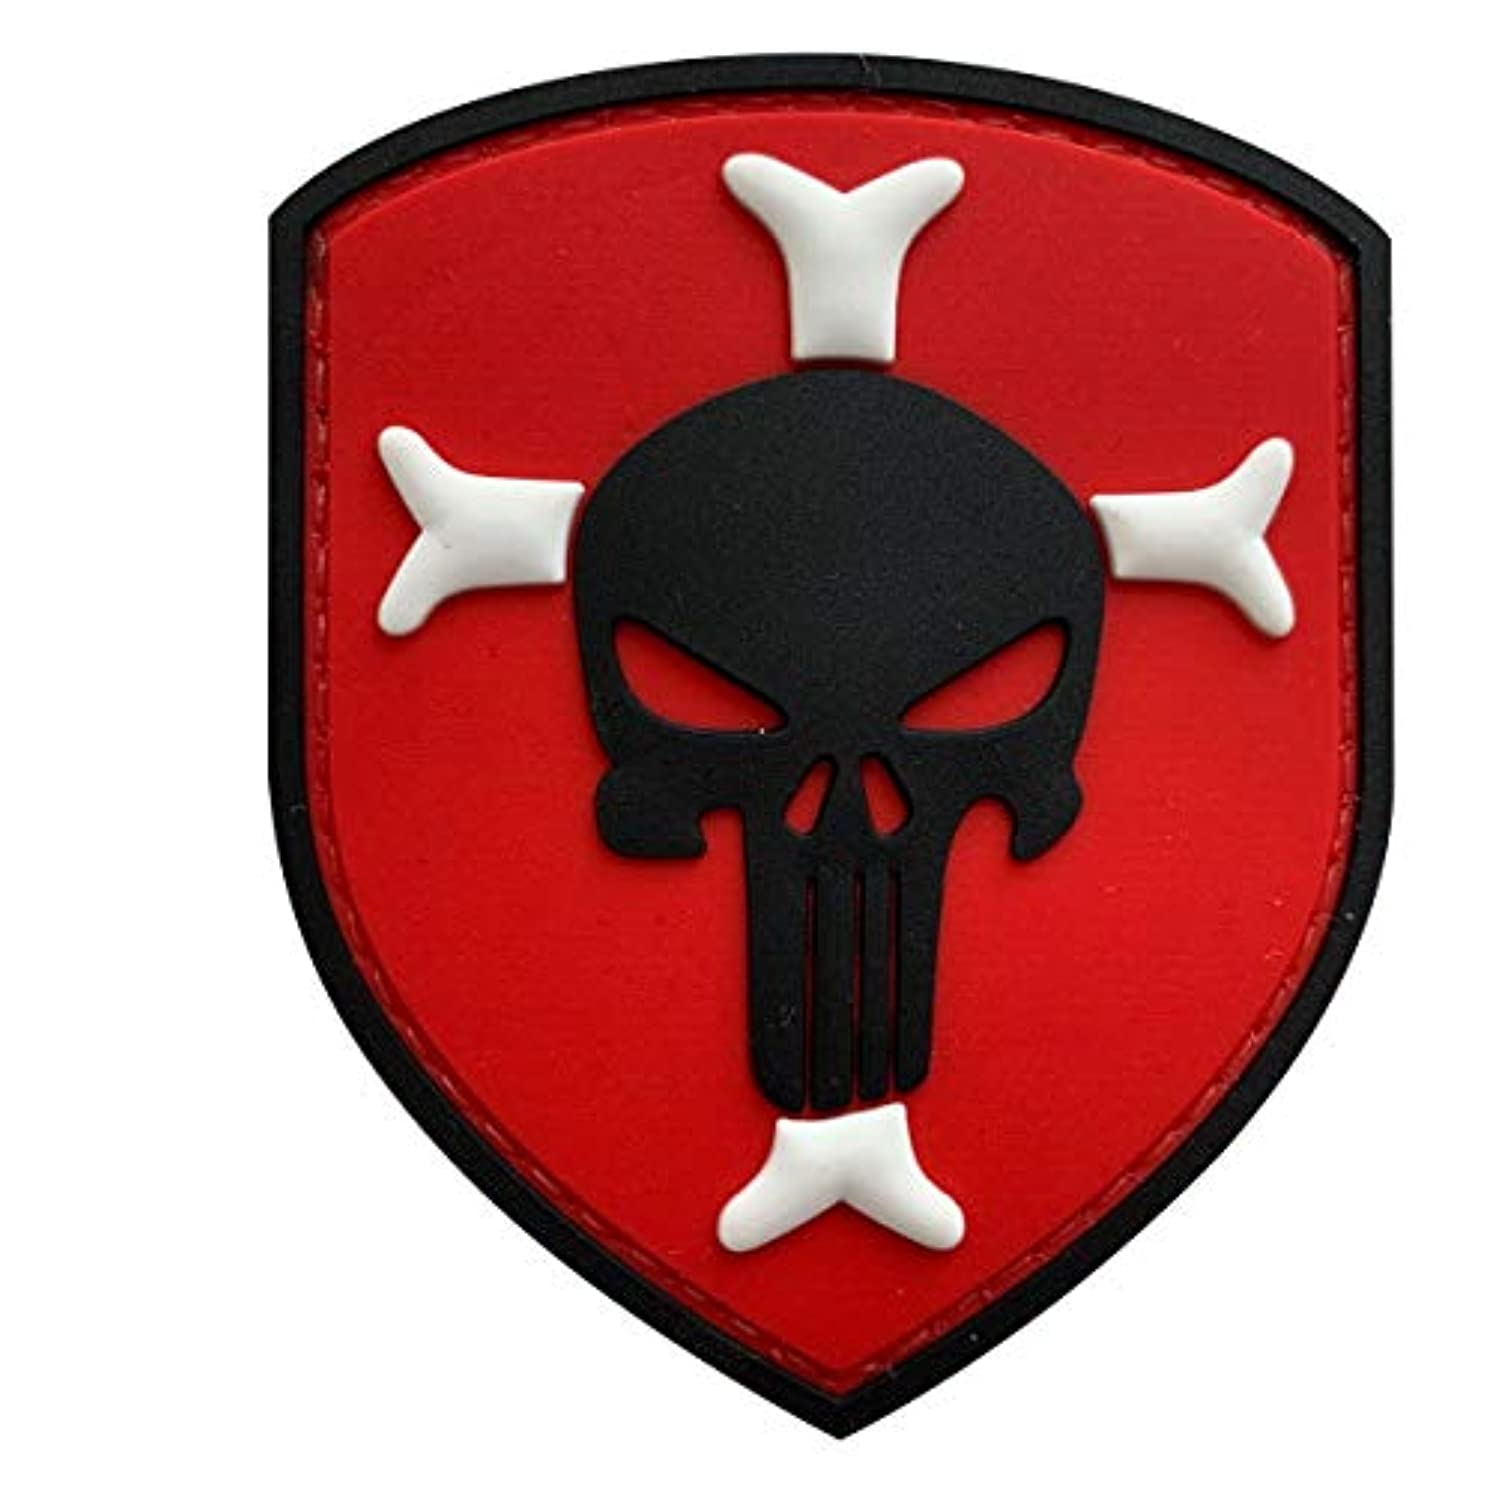 Knights Templar Cross Crusaders Shield with Punisher Military Tactical Morale Patch for Military Tactical Airsoft Gear (Red)